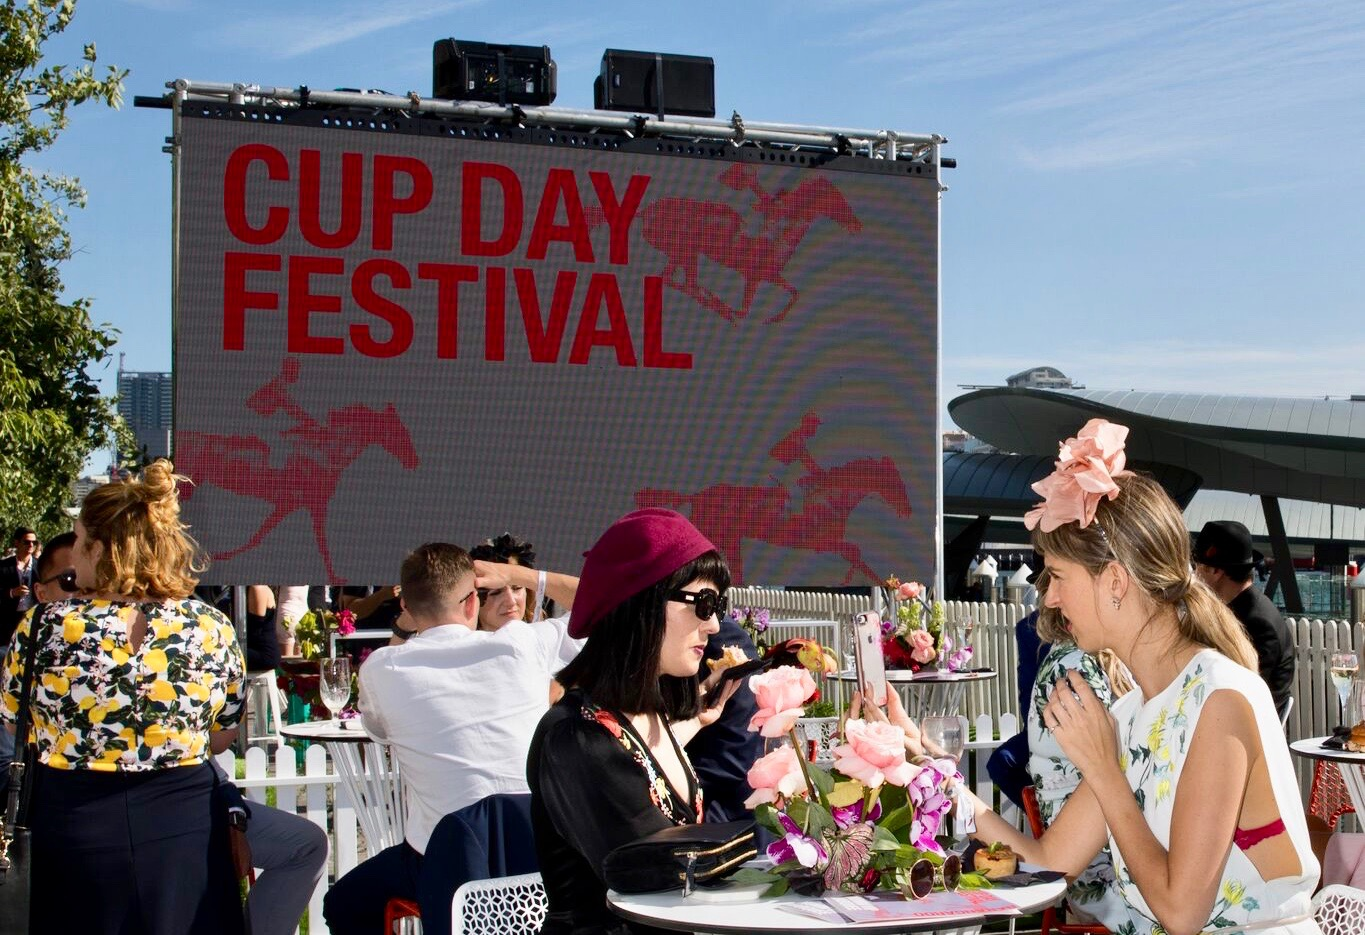 Cup Day Festival at Barangaroo